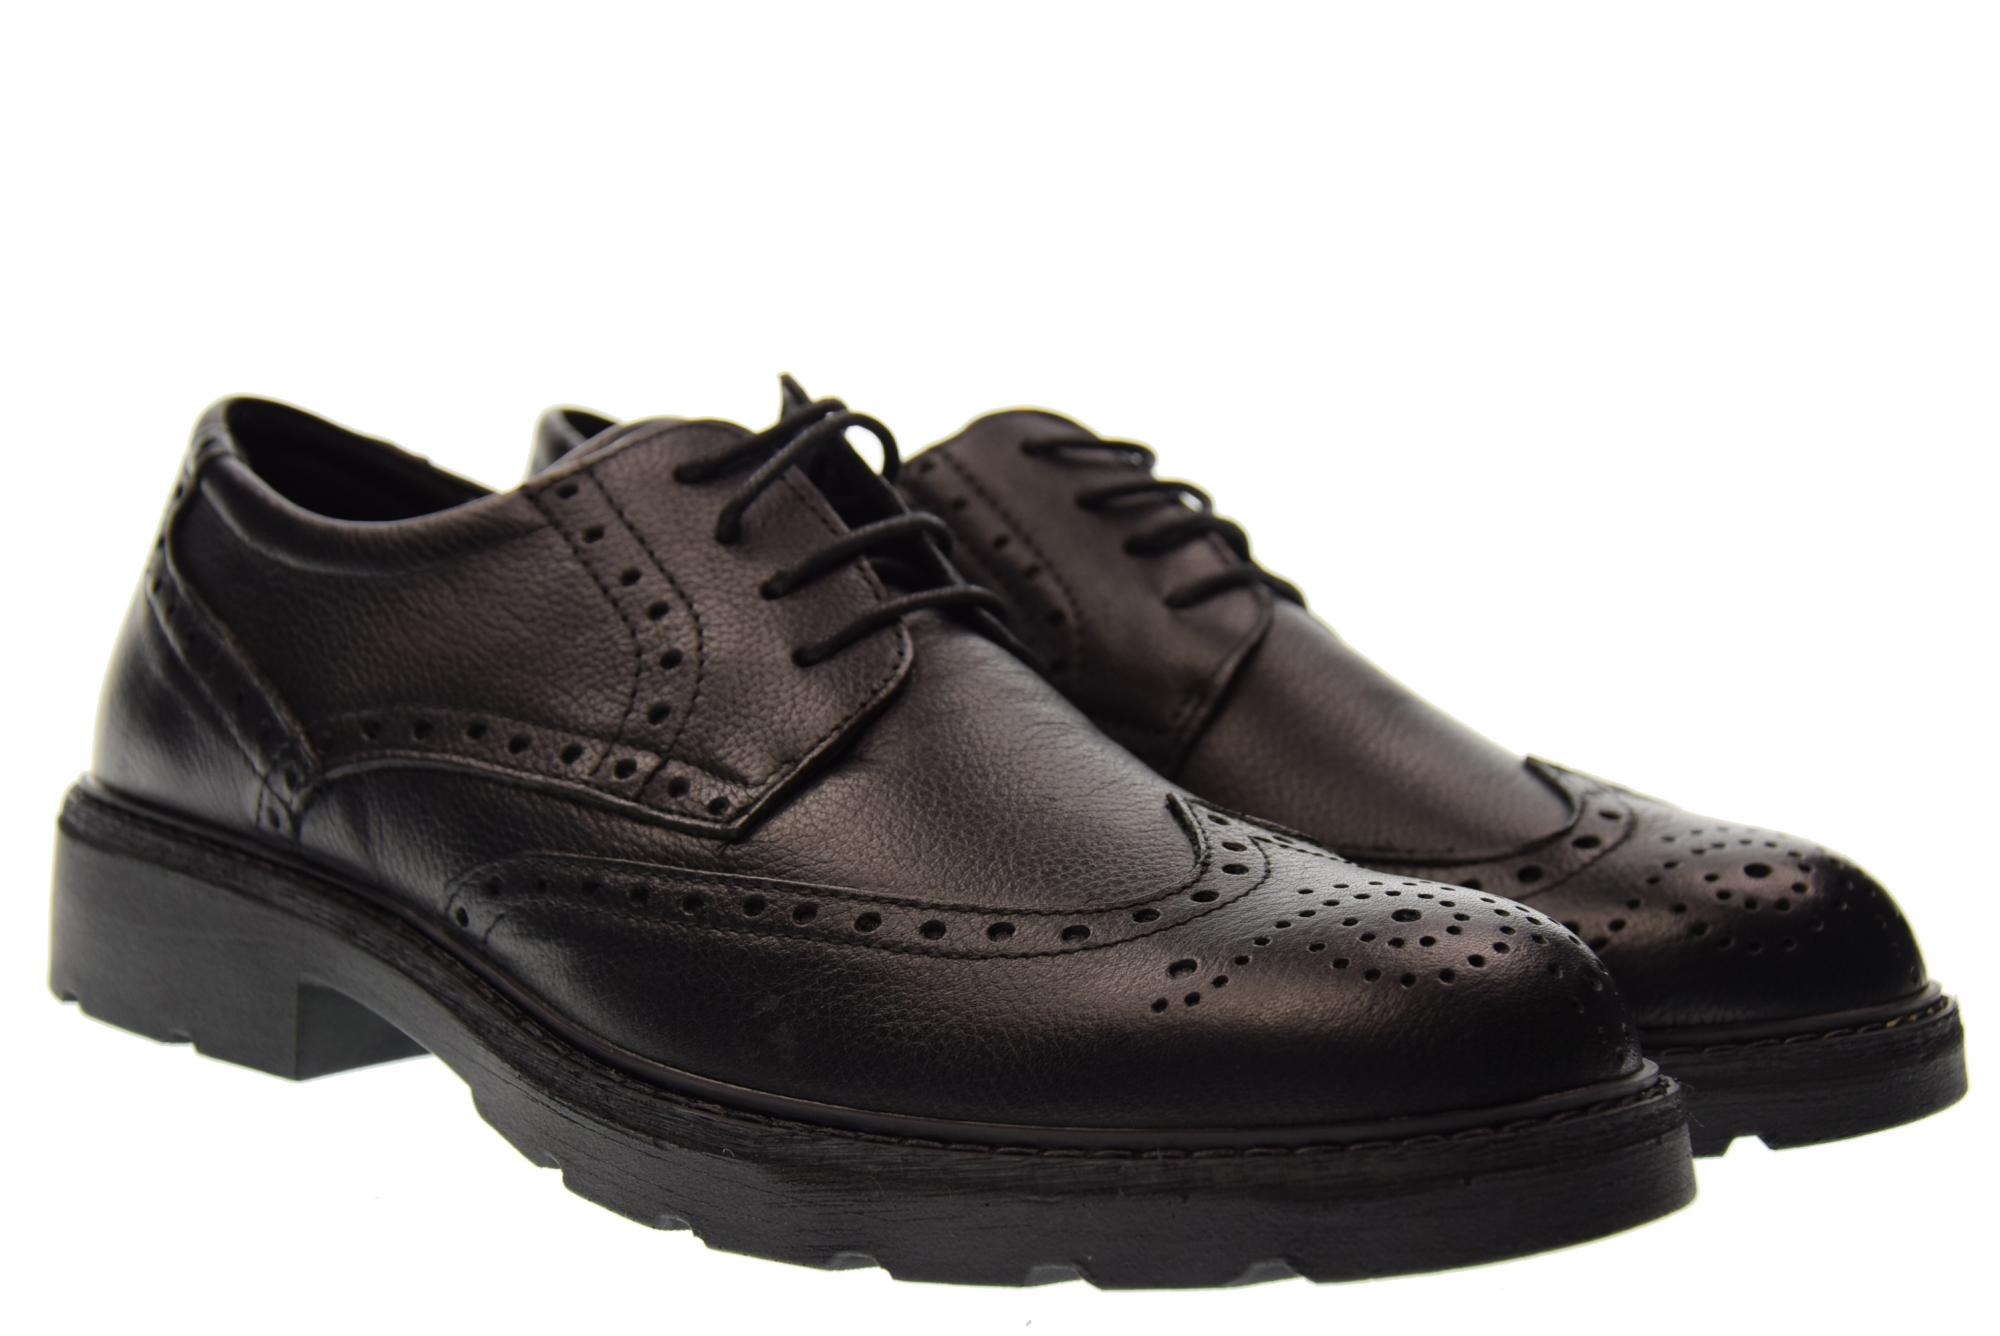 Enval Soft A17f Chaussure homme Anglaises 88850 00 negro